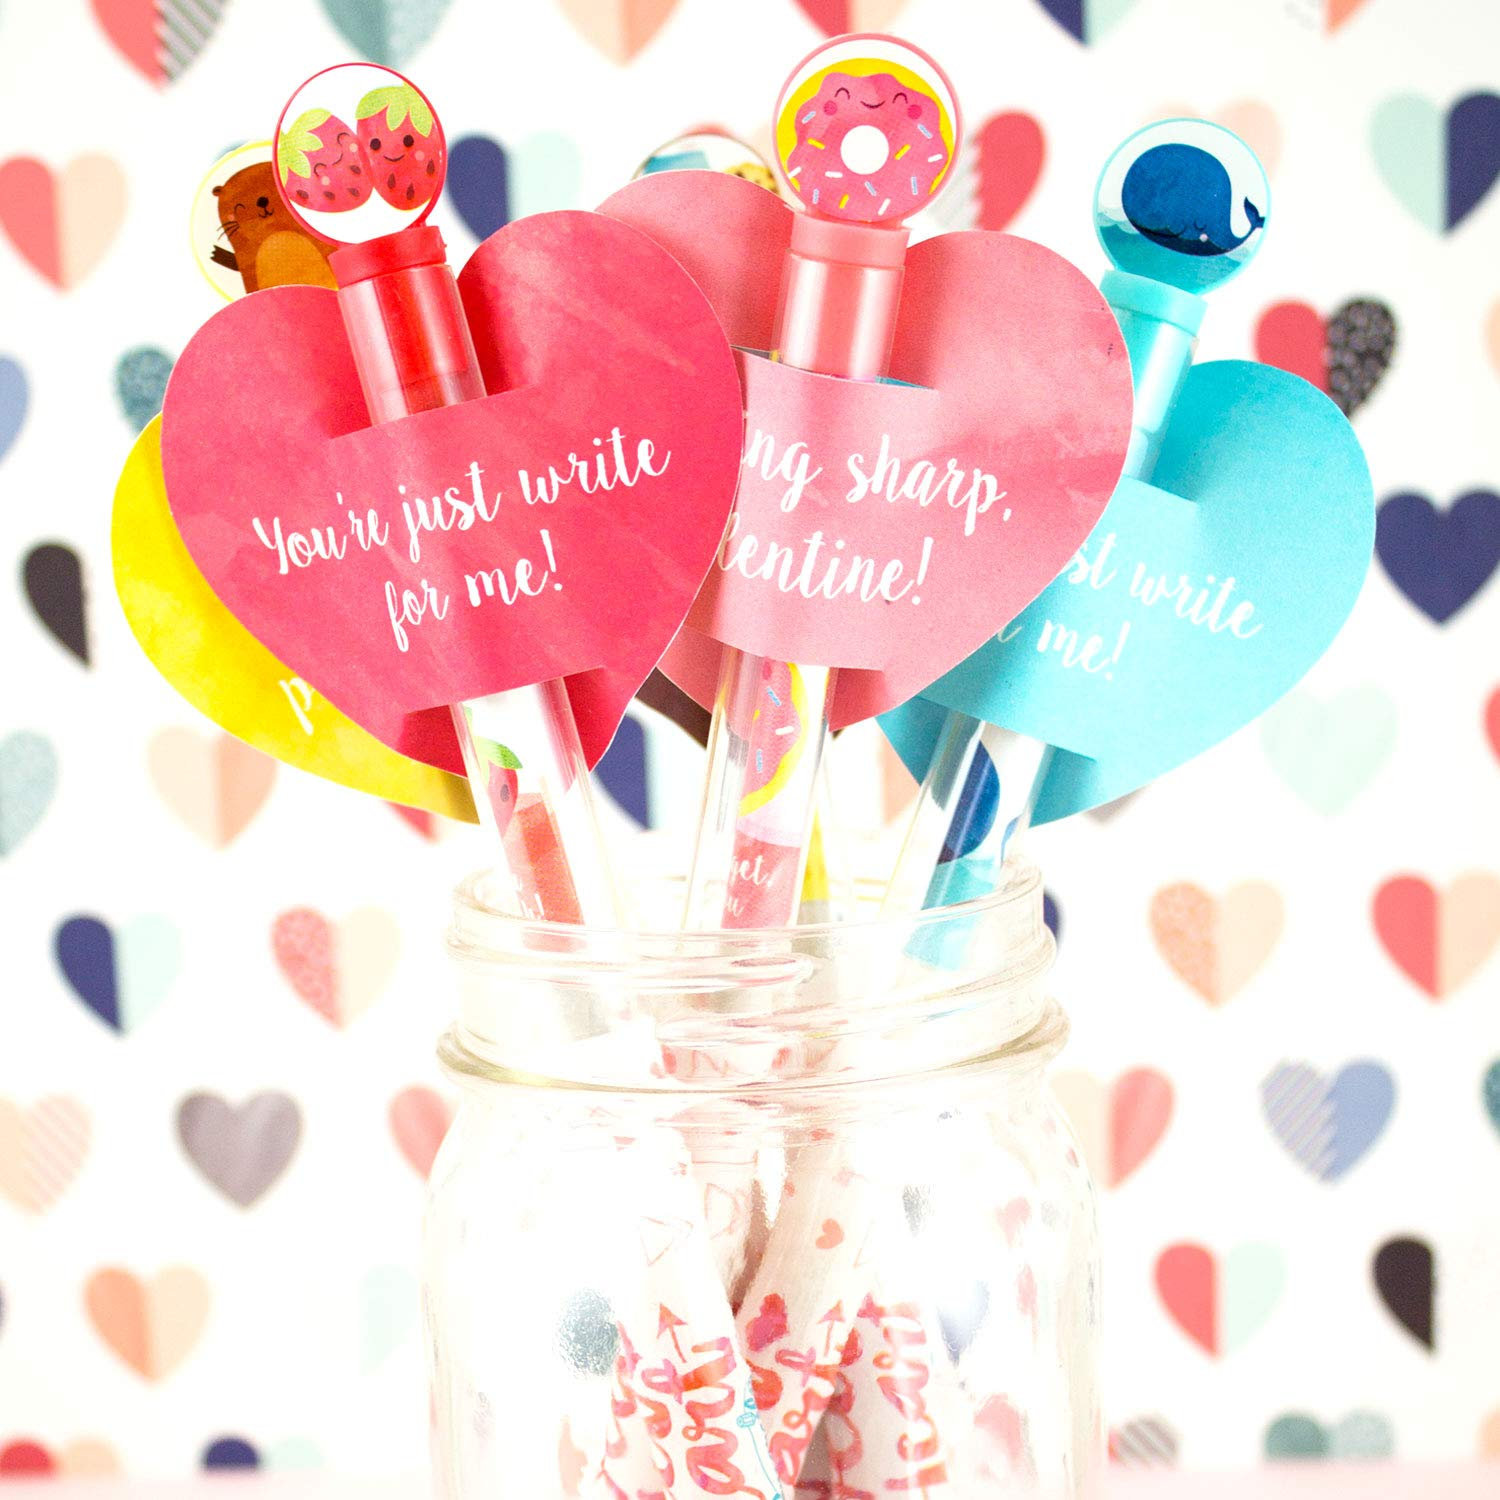 Scentco Sweetheart Smencils 5-Pack of HB no 2 Valentines Scented Pencils